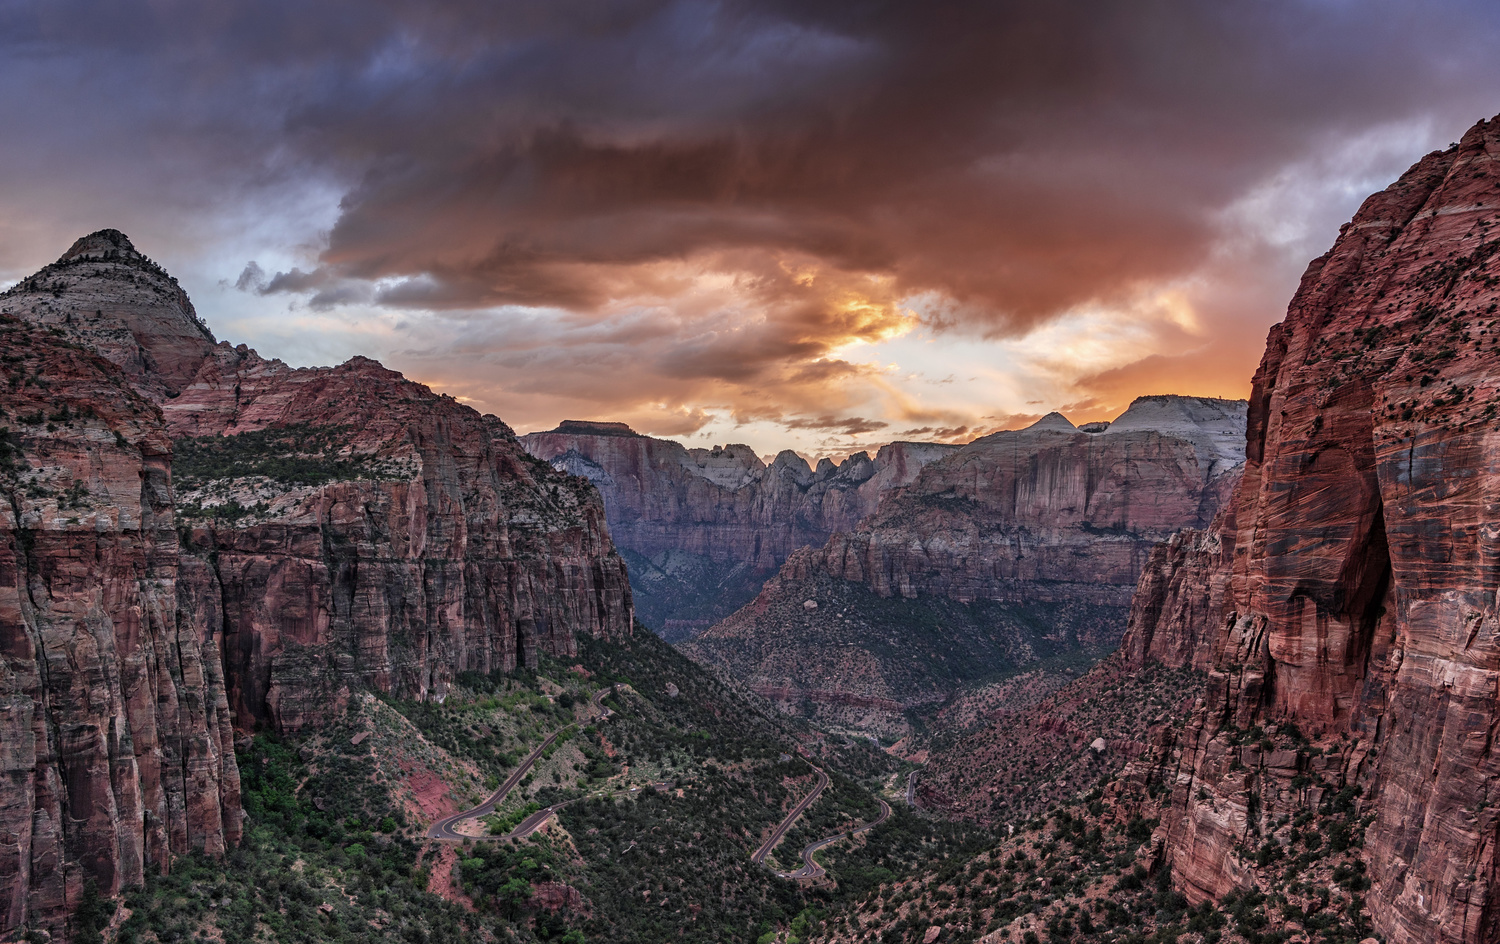 Canyon Overlook Sunset - Zion Nat'l park, UT by John Nicholson